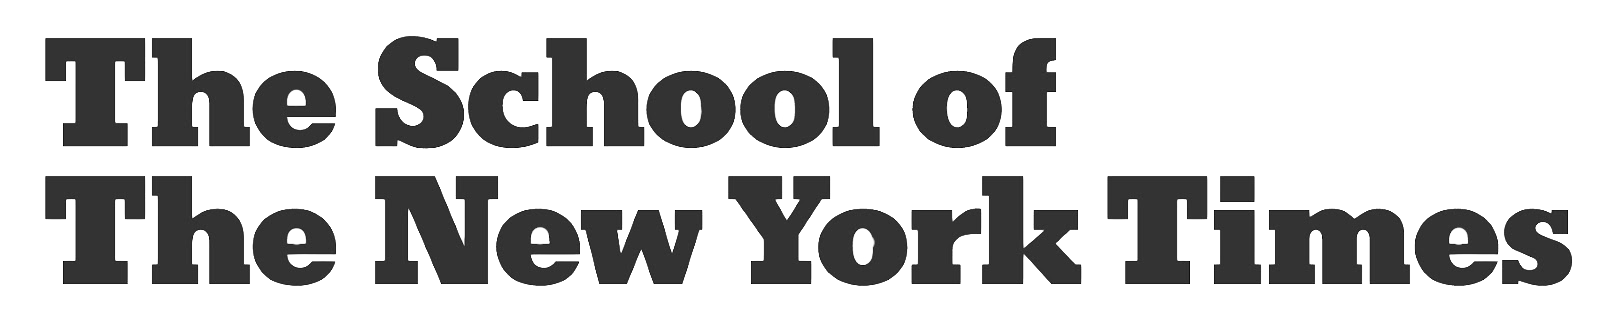 the-school-new-york-times.png